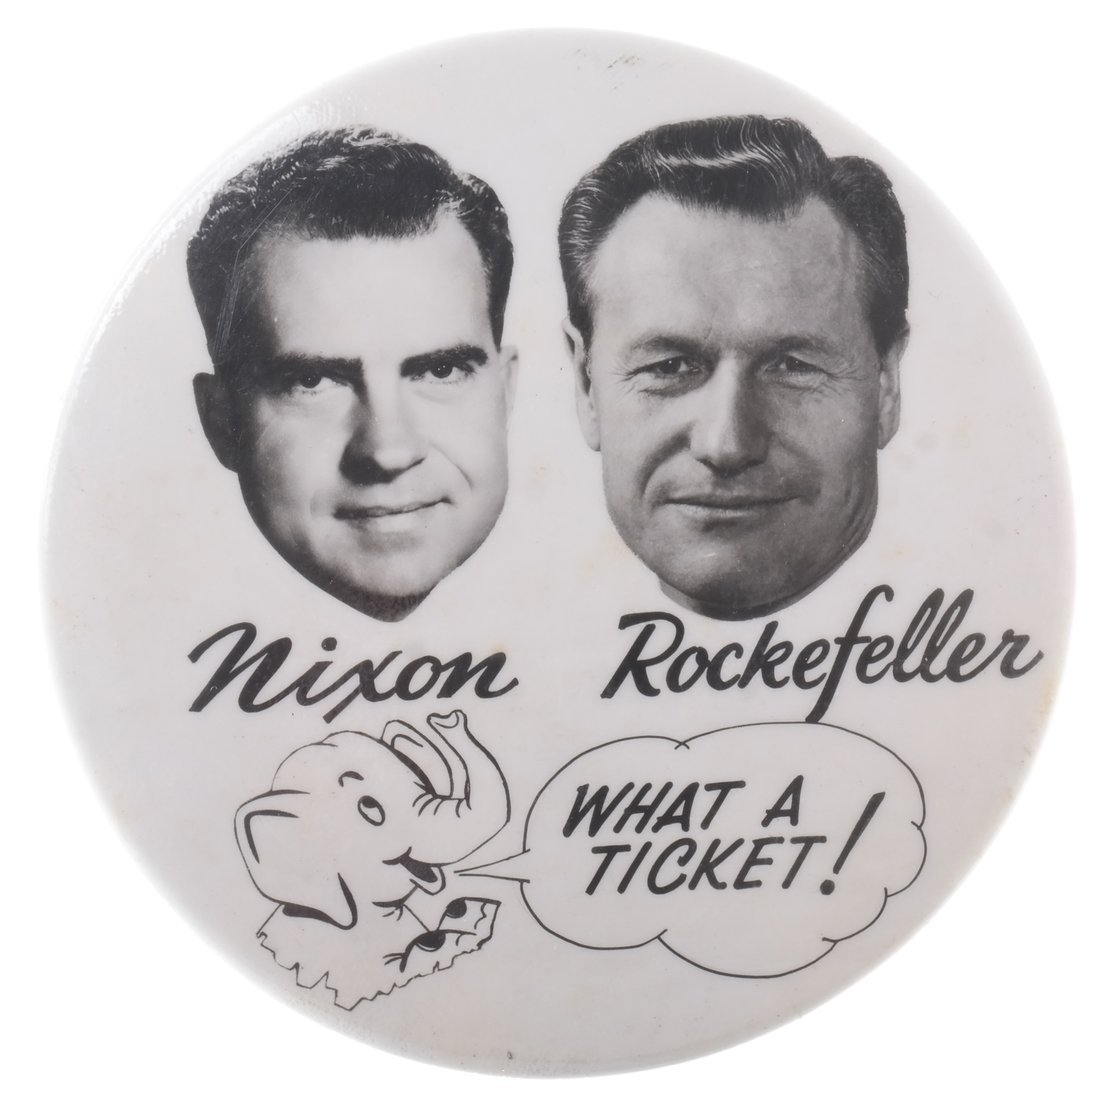 Nixon & Rockefeller 1960 Photographic Jugate Button